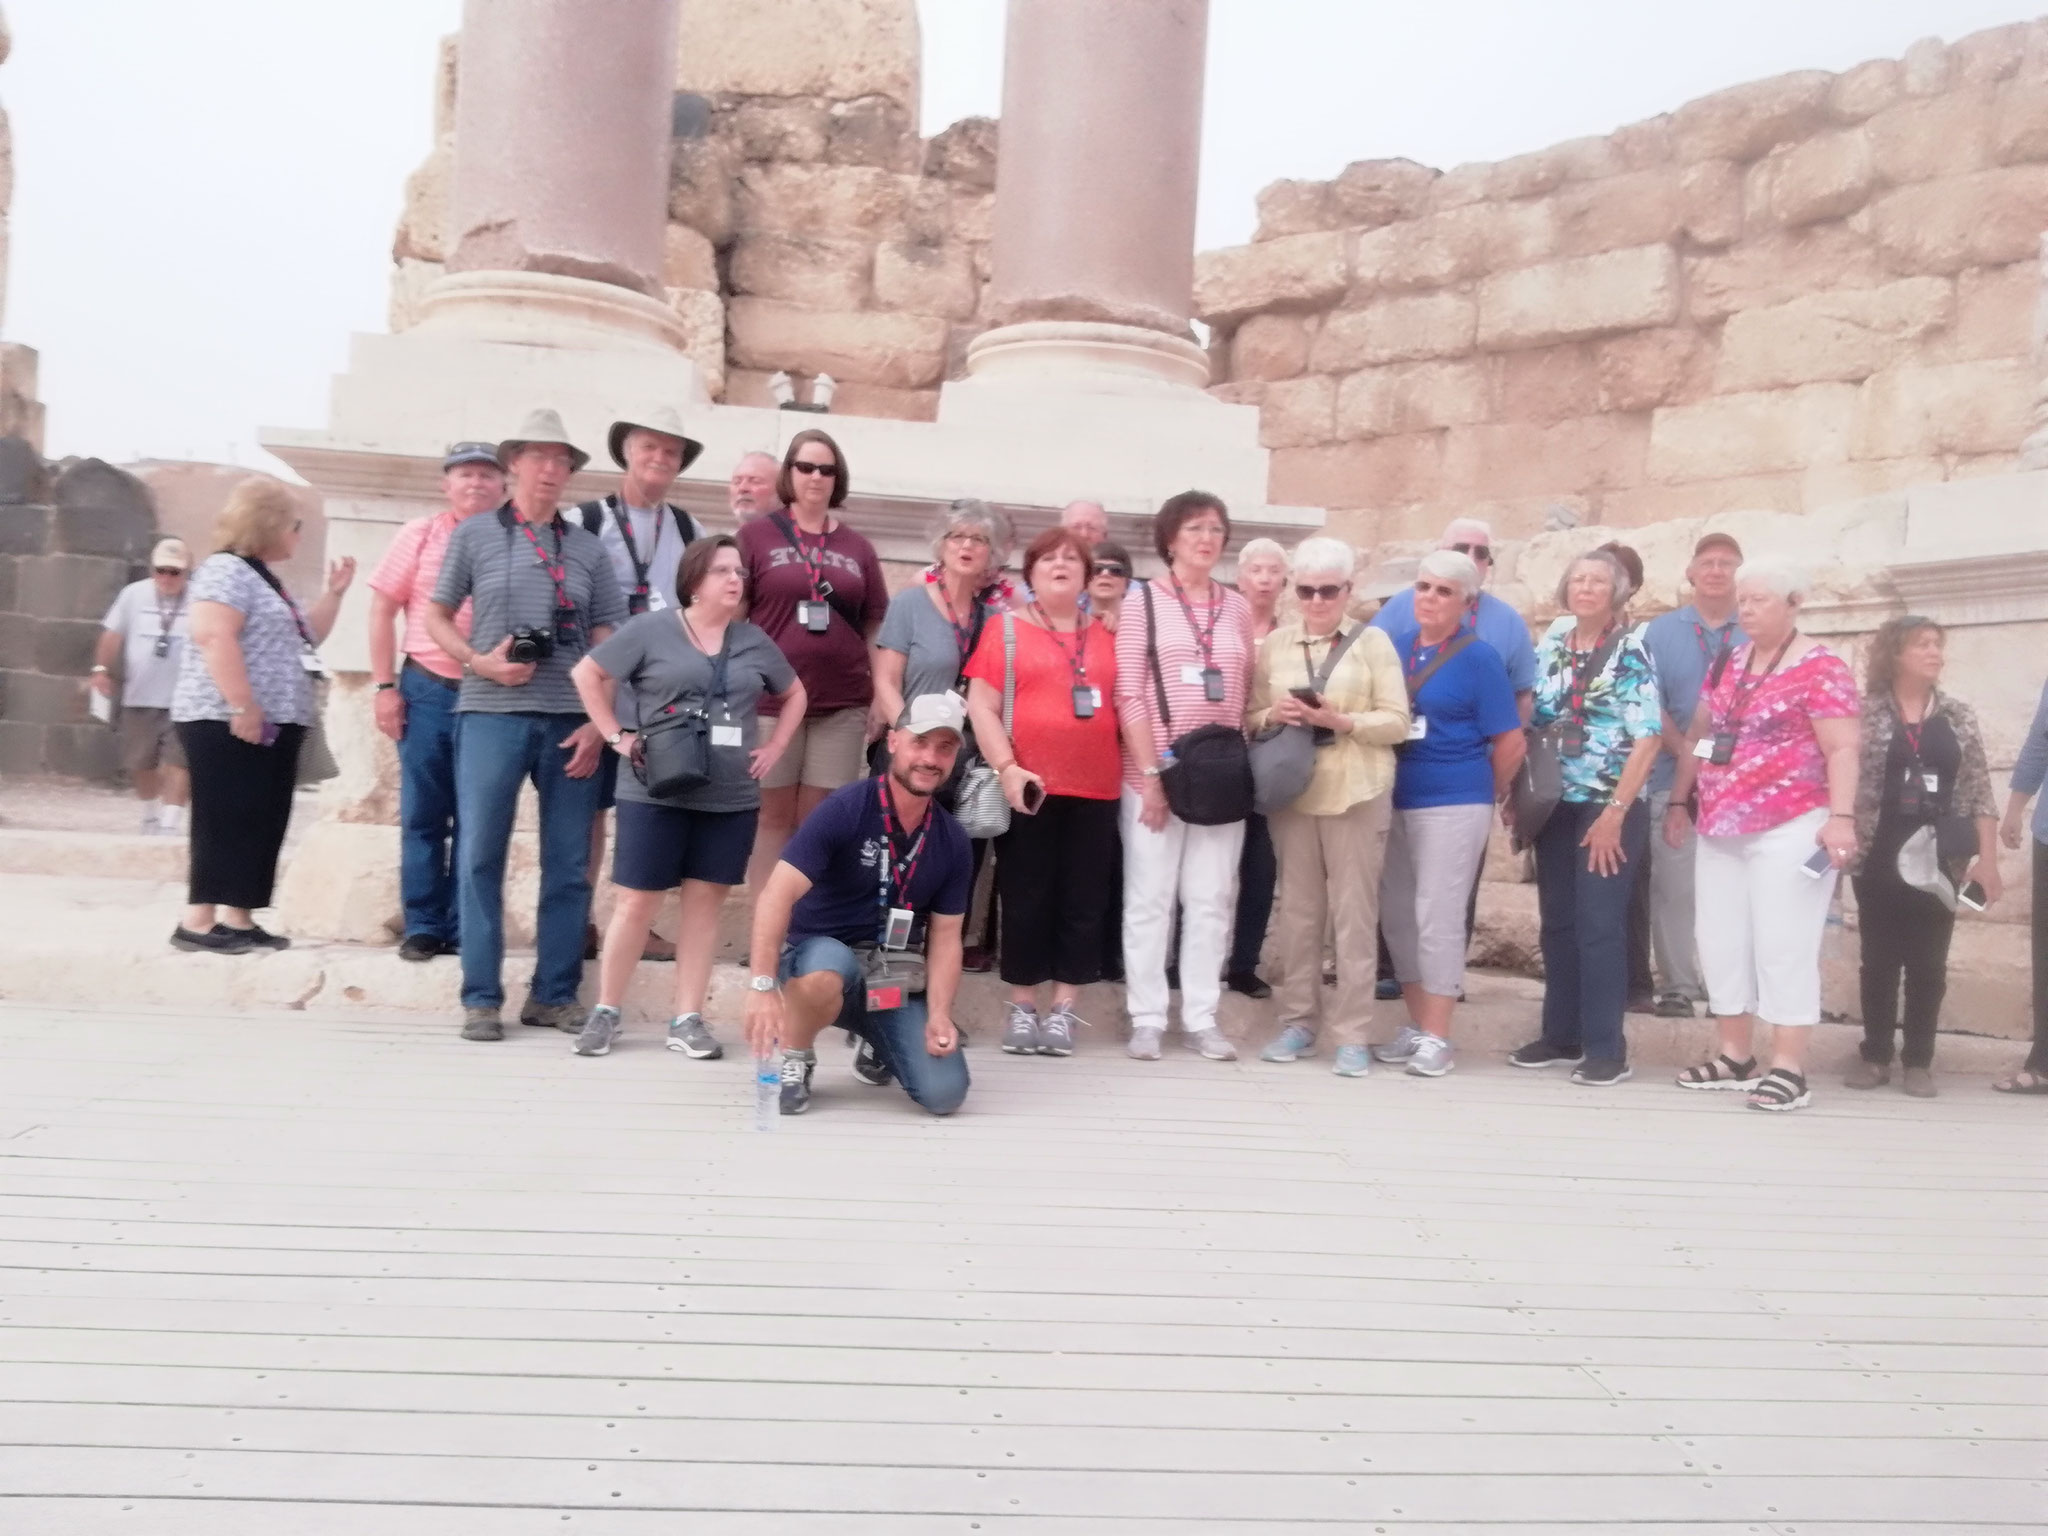 On the stage of Beth Shean's ancient theater